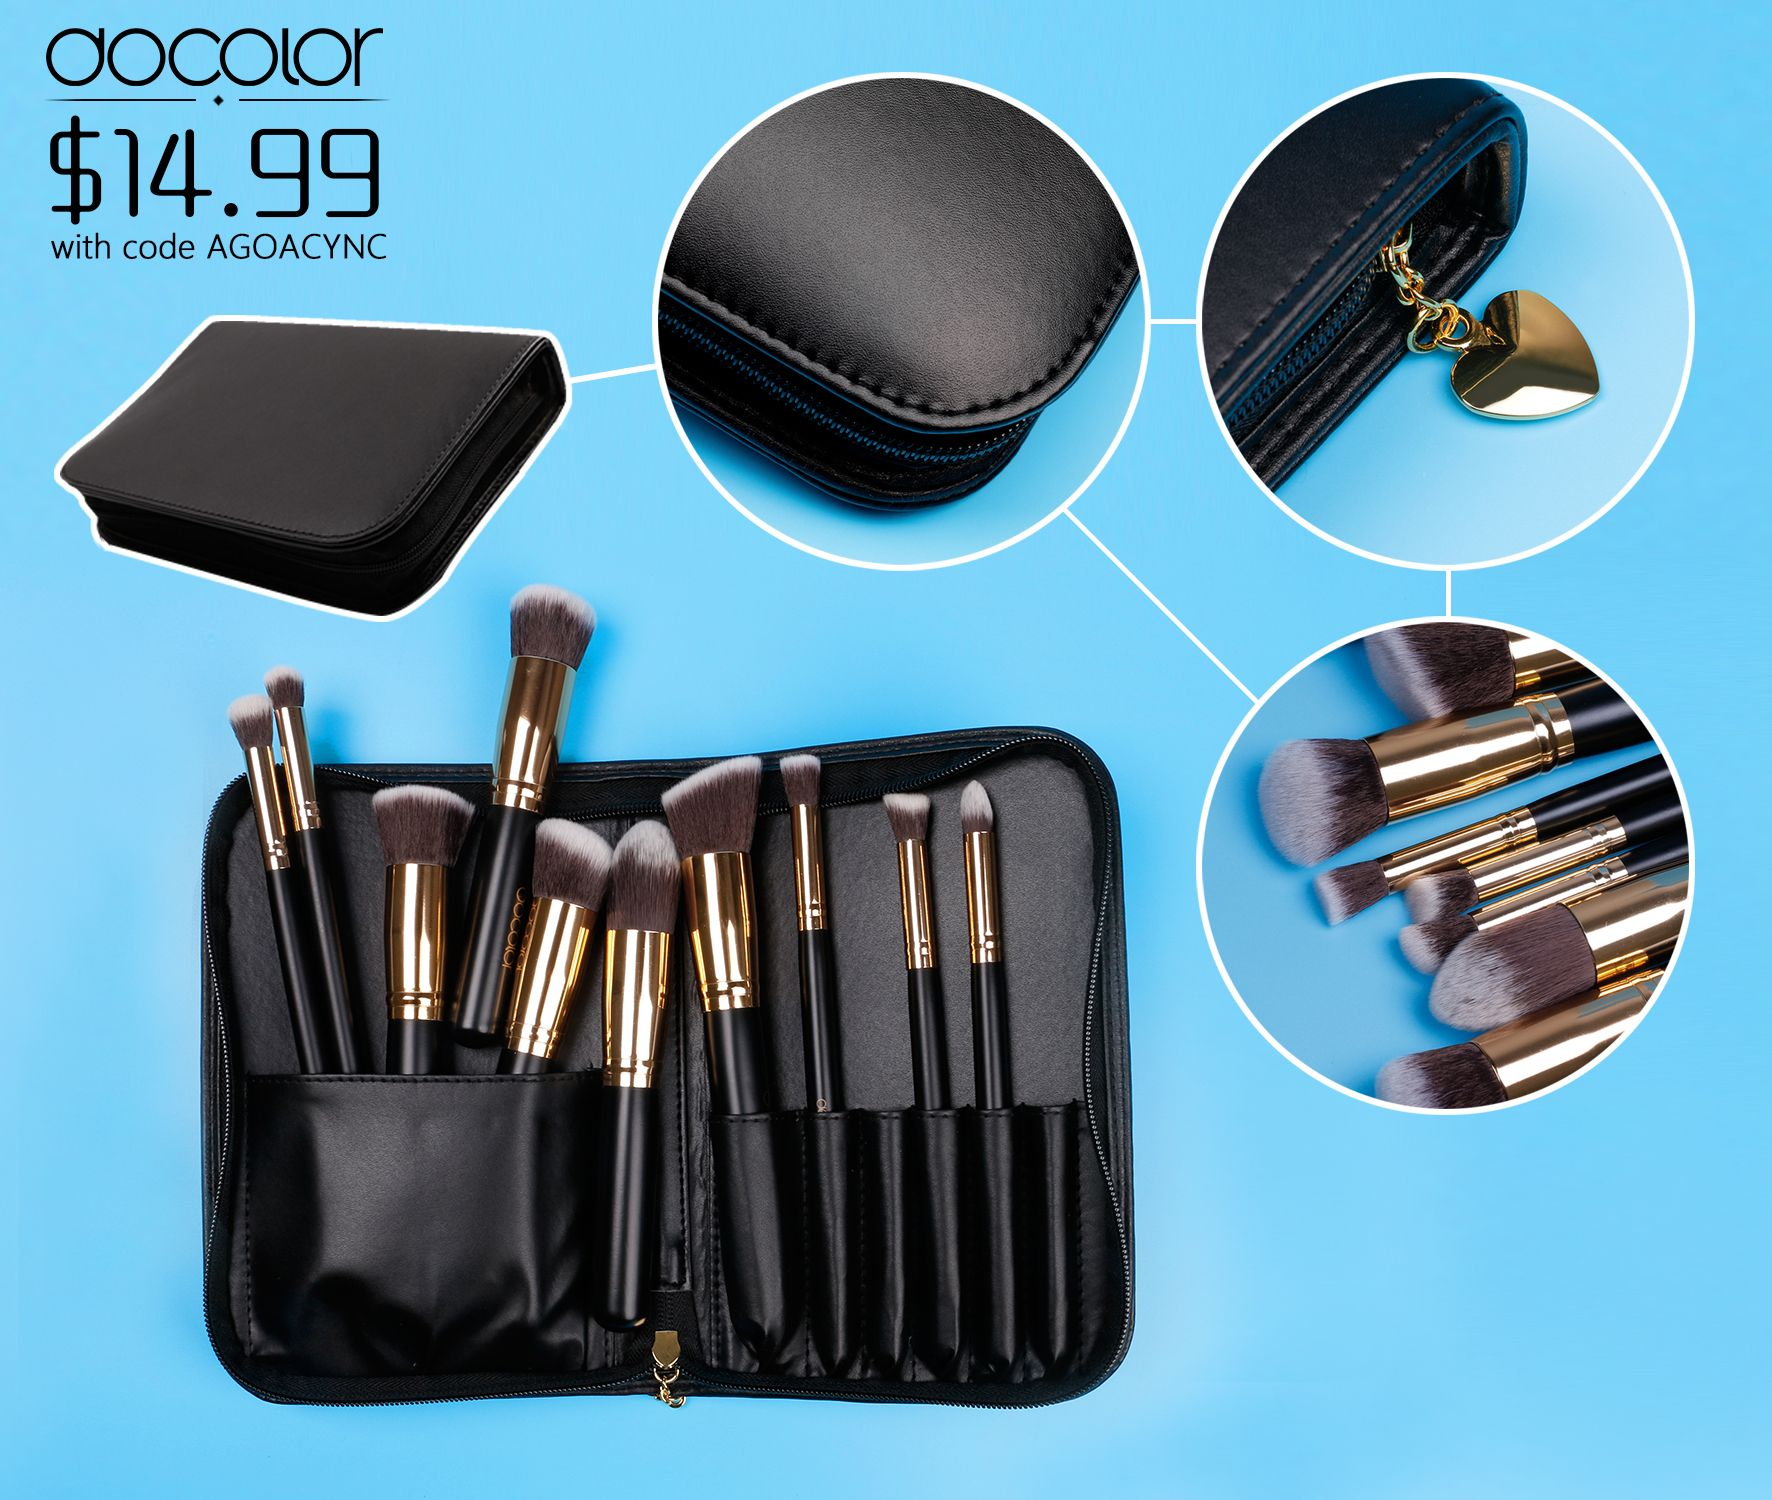 Golden Cosmetic Makeup Brush set! Get 25 off with code